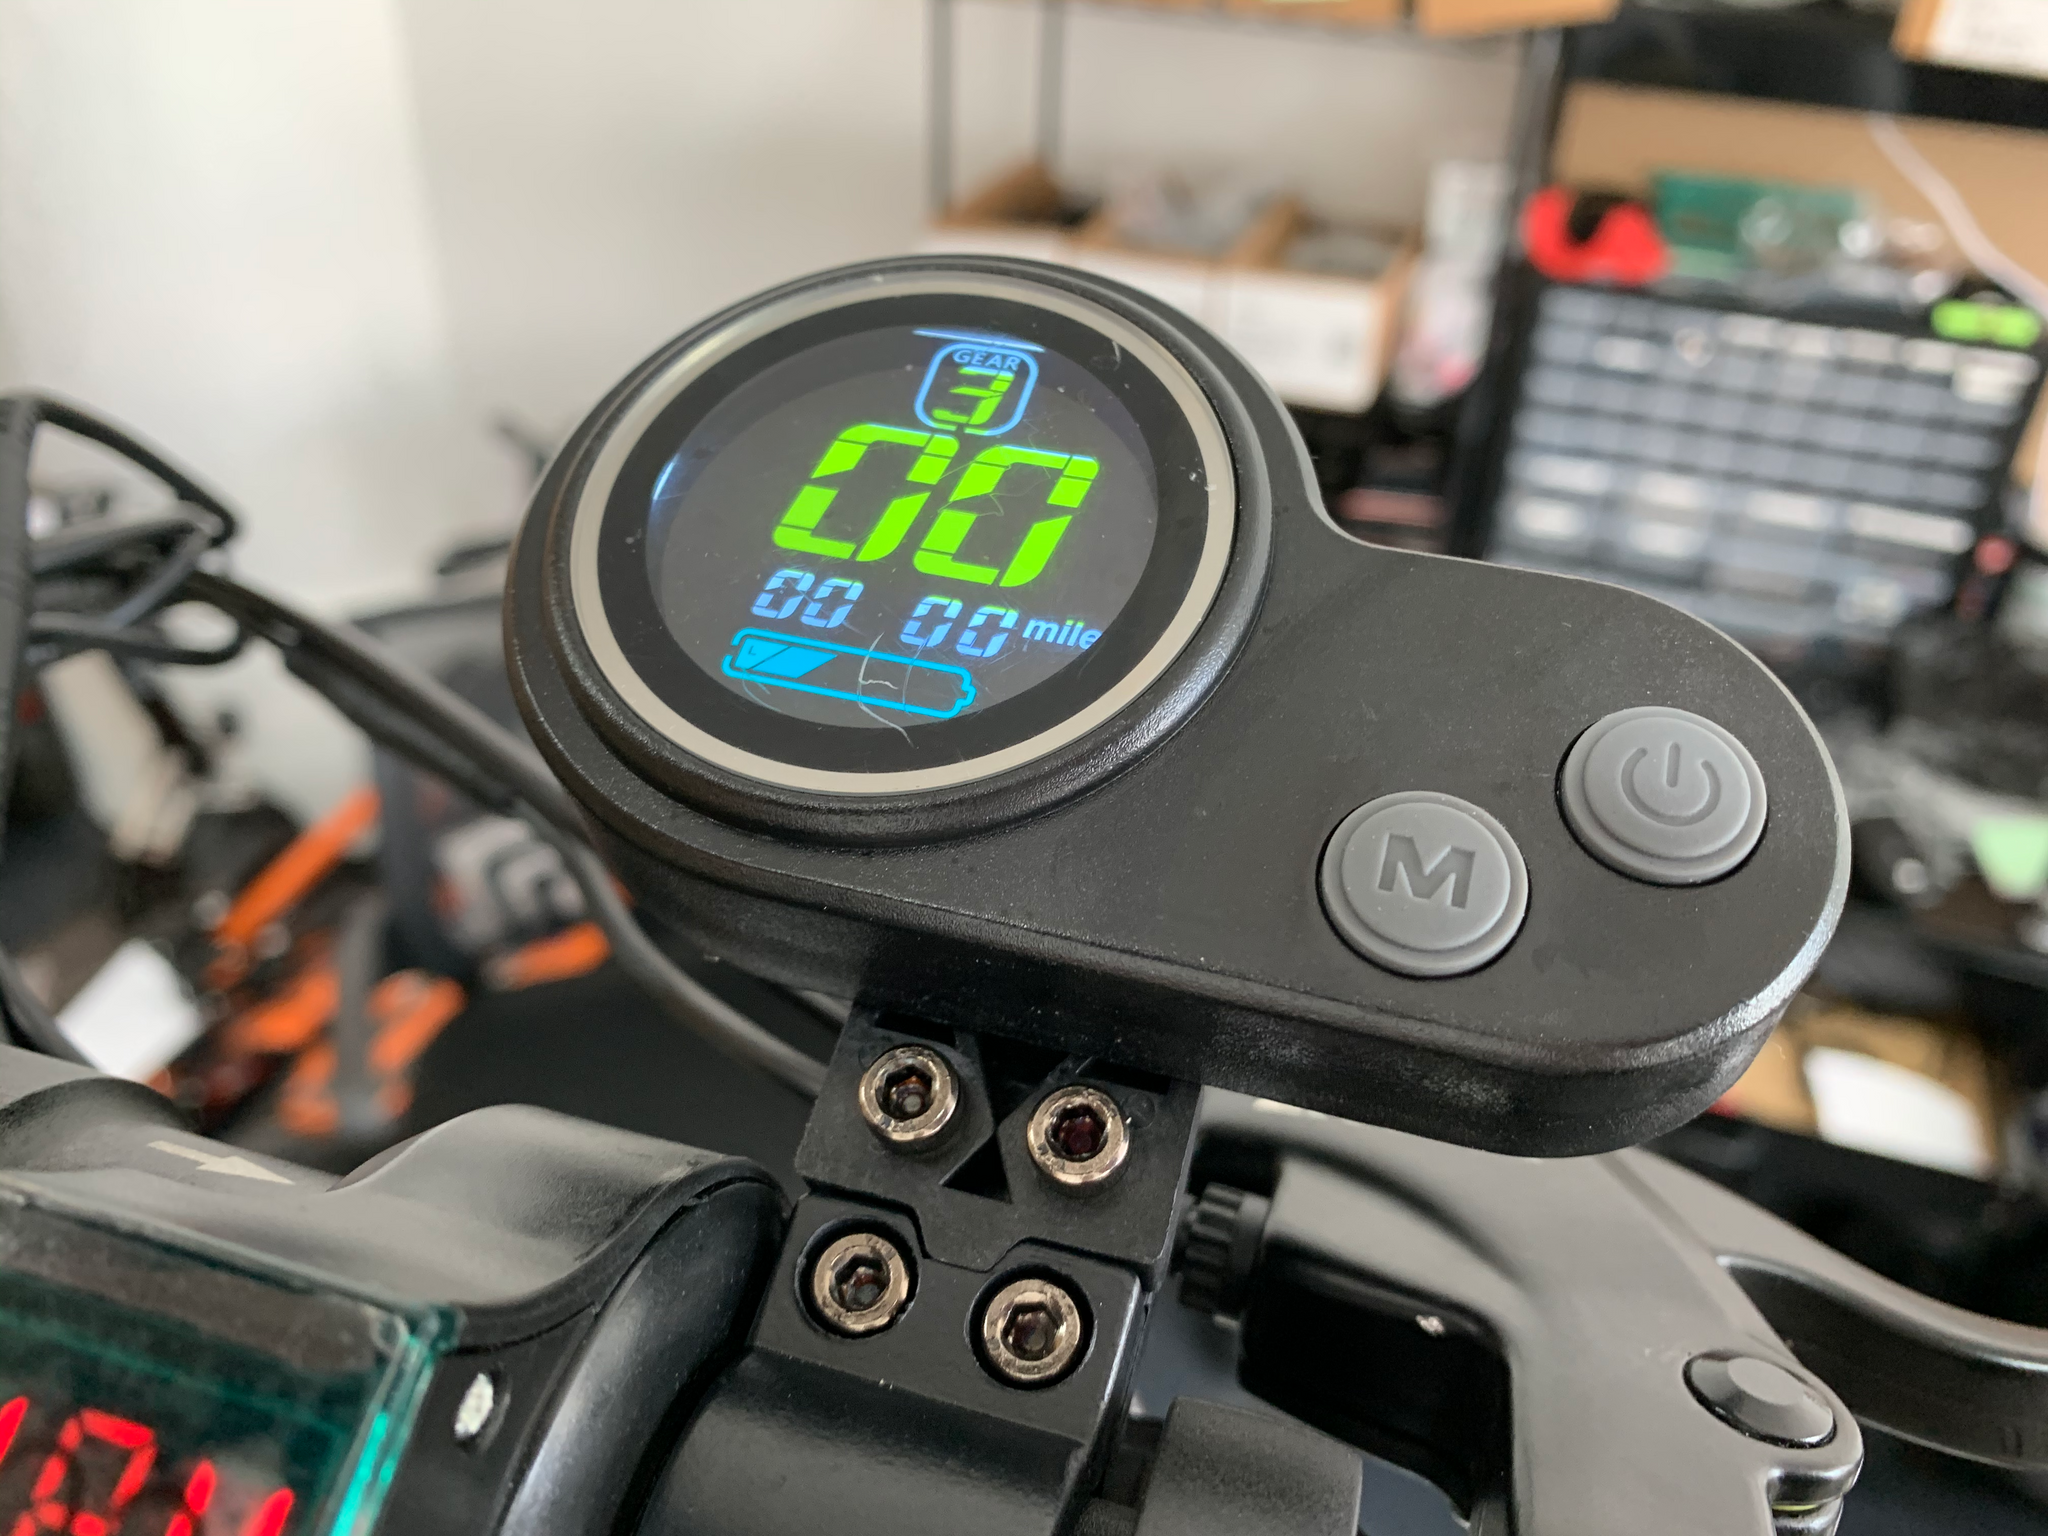 New LCD Display with the Thumb Throttle